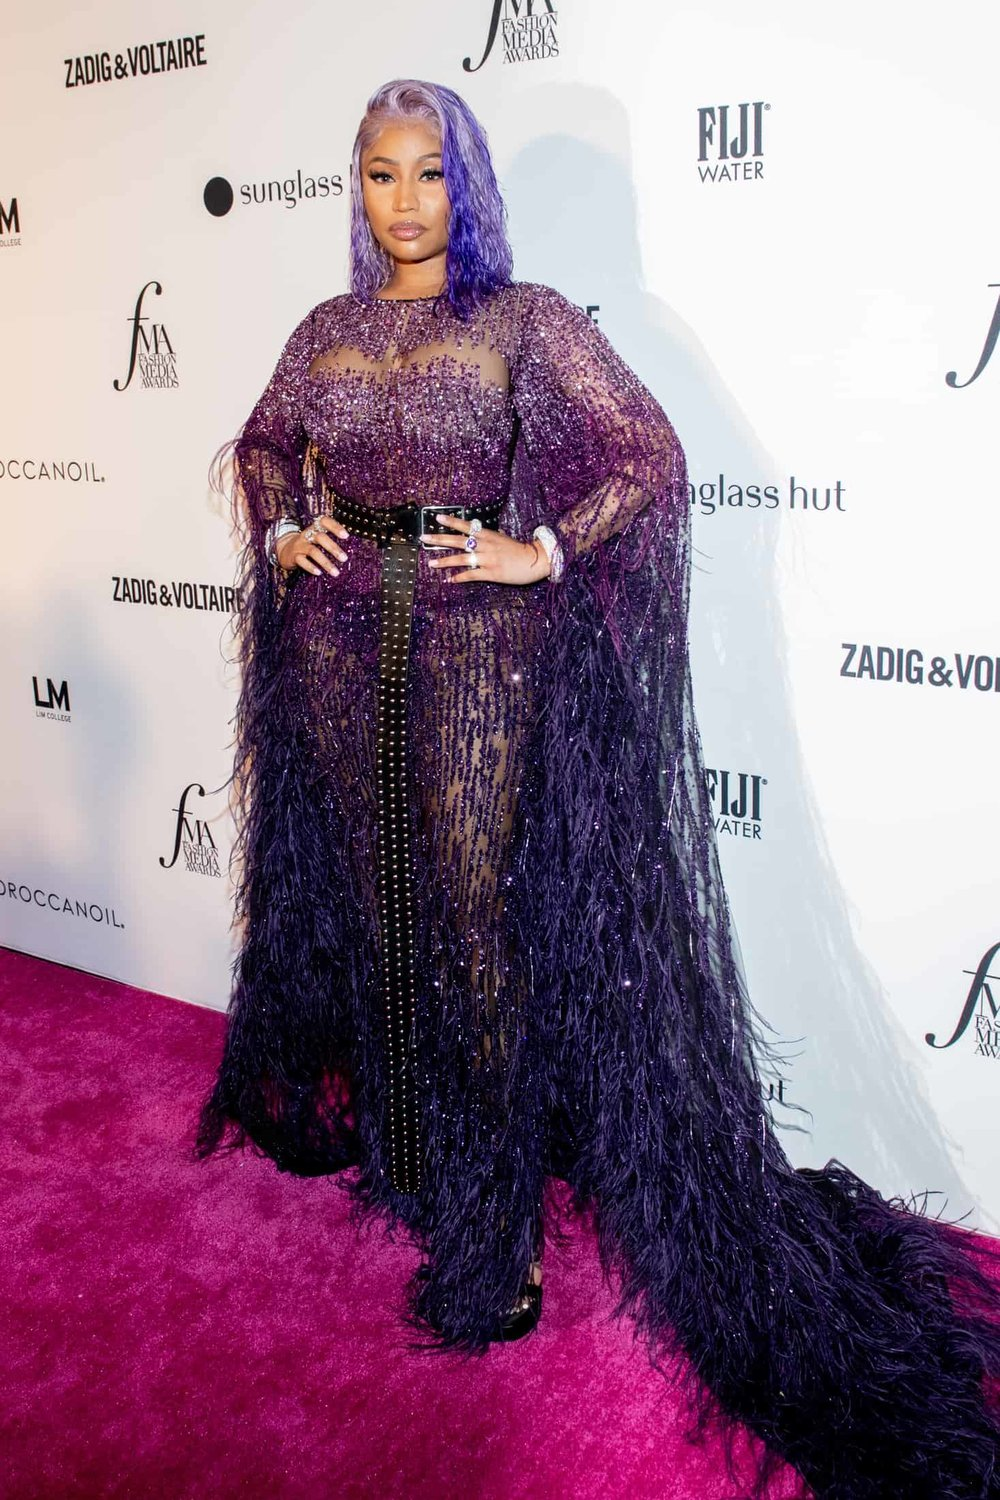 Nicki Minaj attends the Daily Front Row's Fashion Media Awards in New York City.